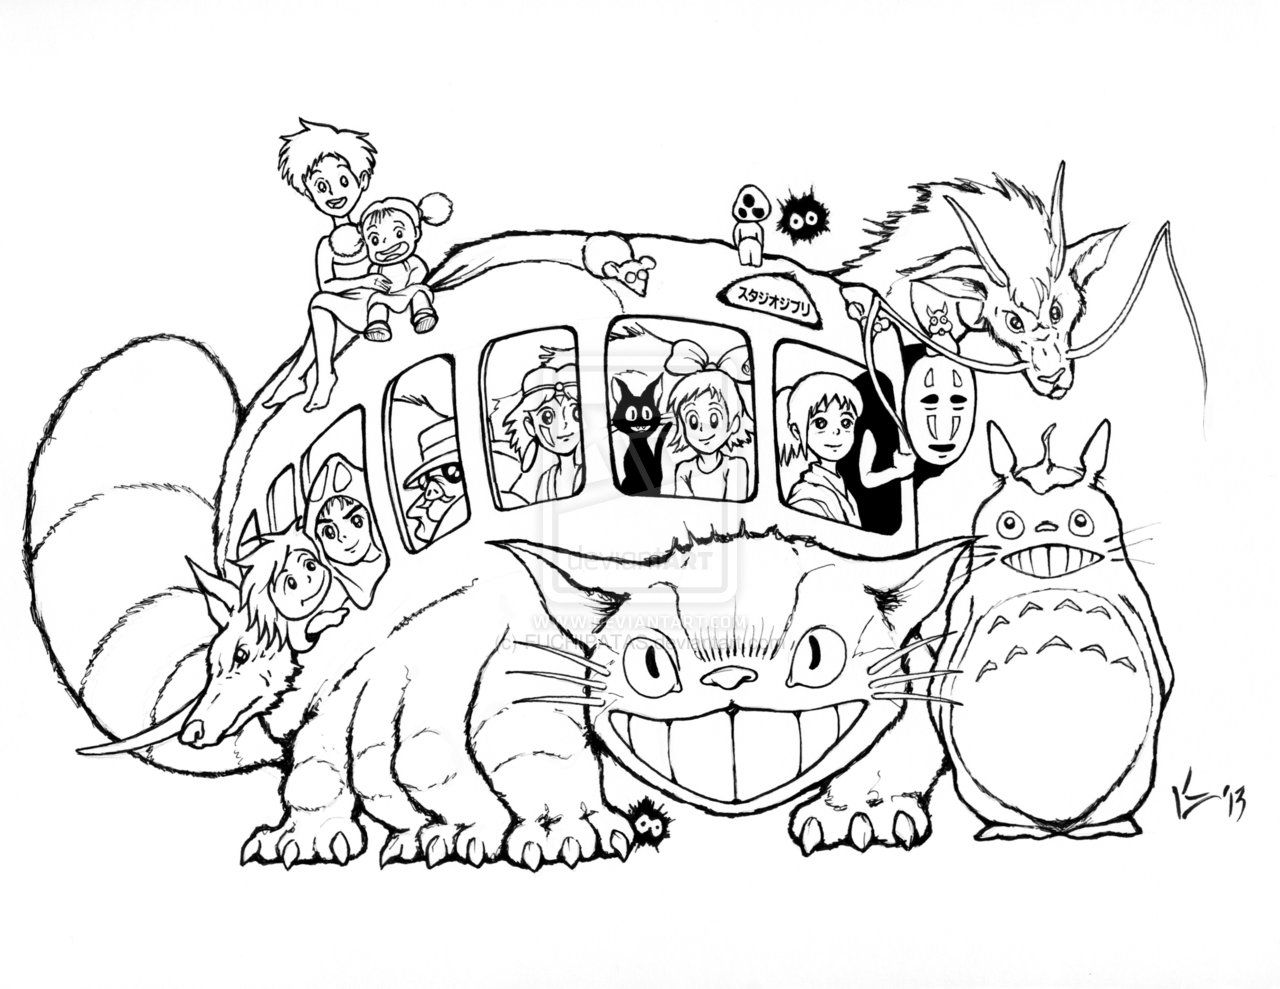 studio ghibli coloring pages Studio Ghibli Catbus for AICN Contest   INKS by FUCHIPATAS  studio ghibli coloring pages